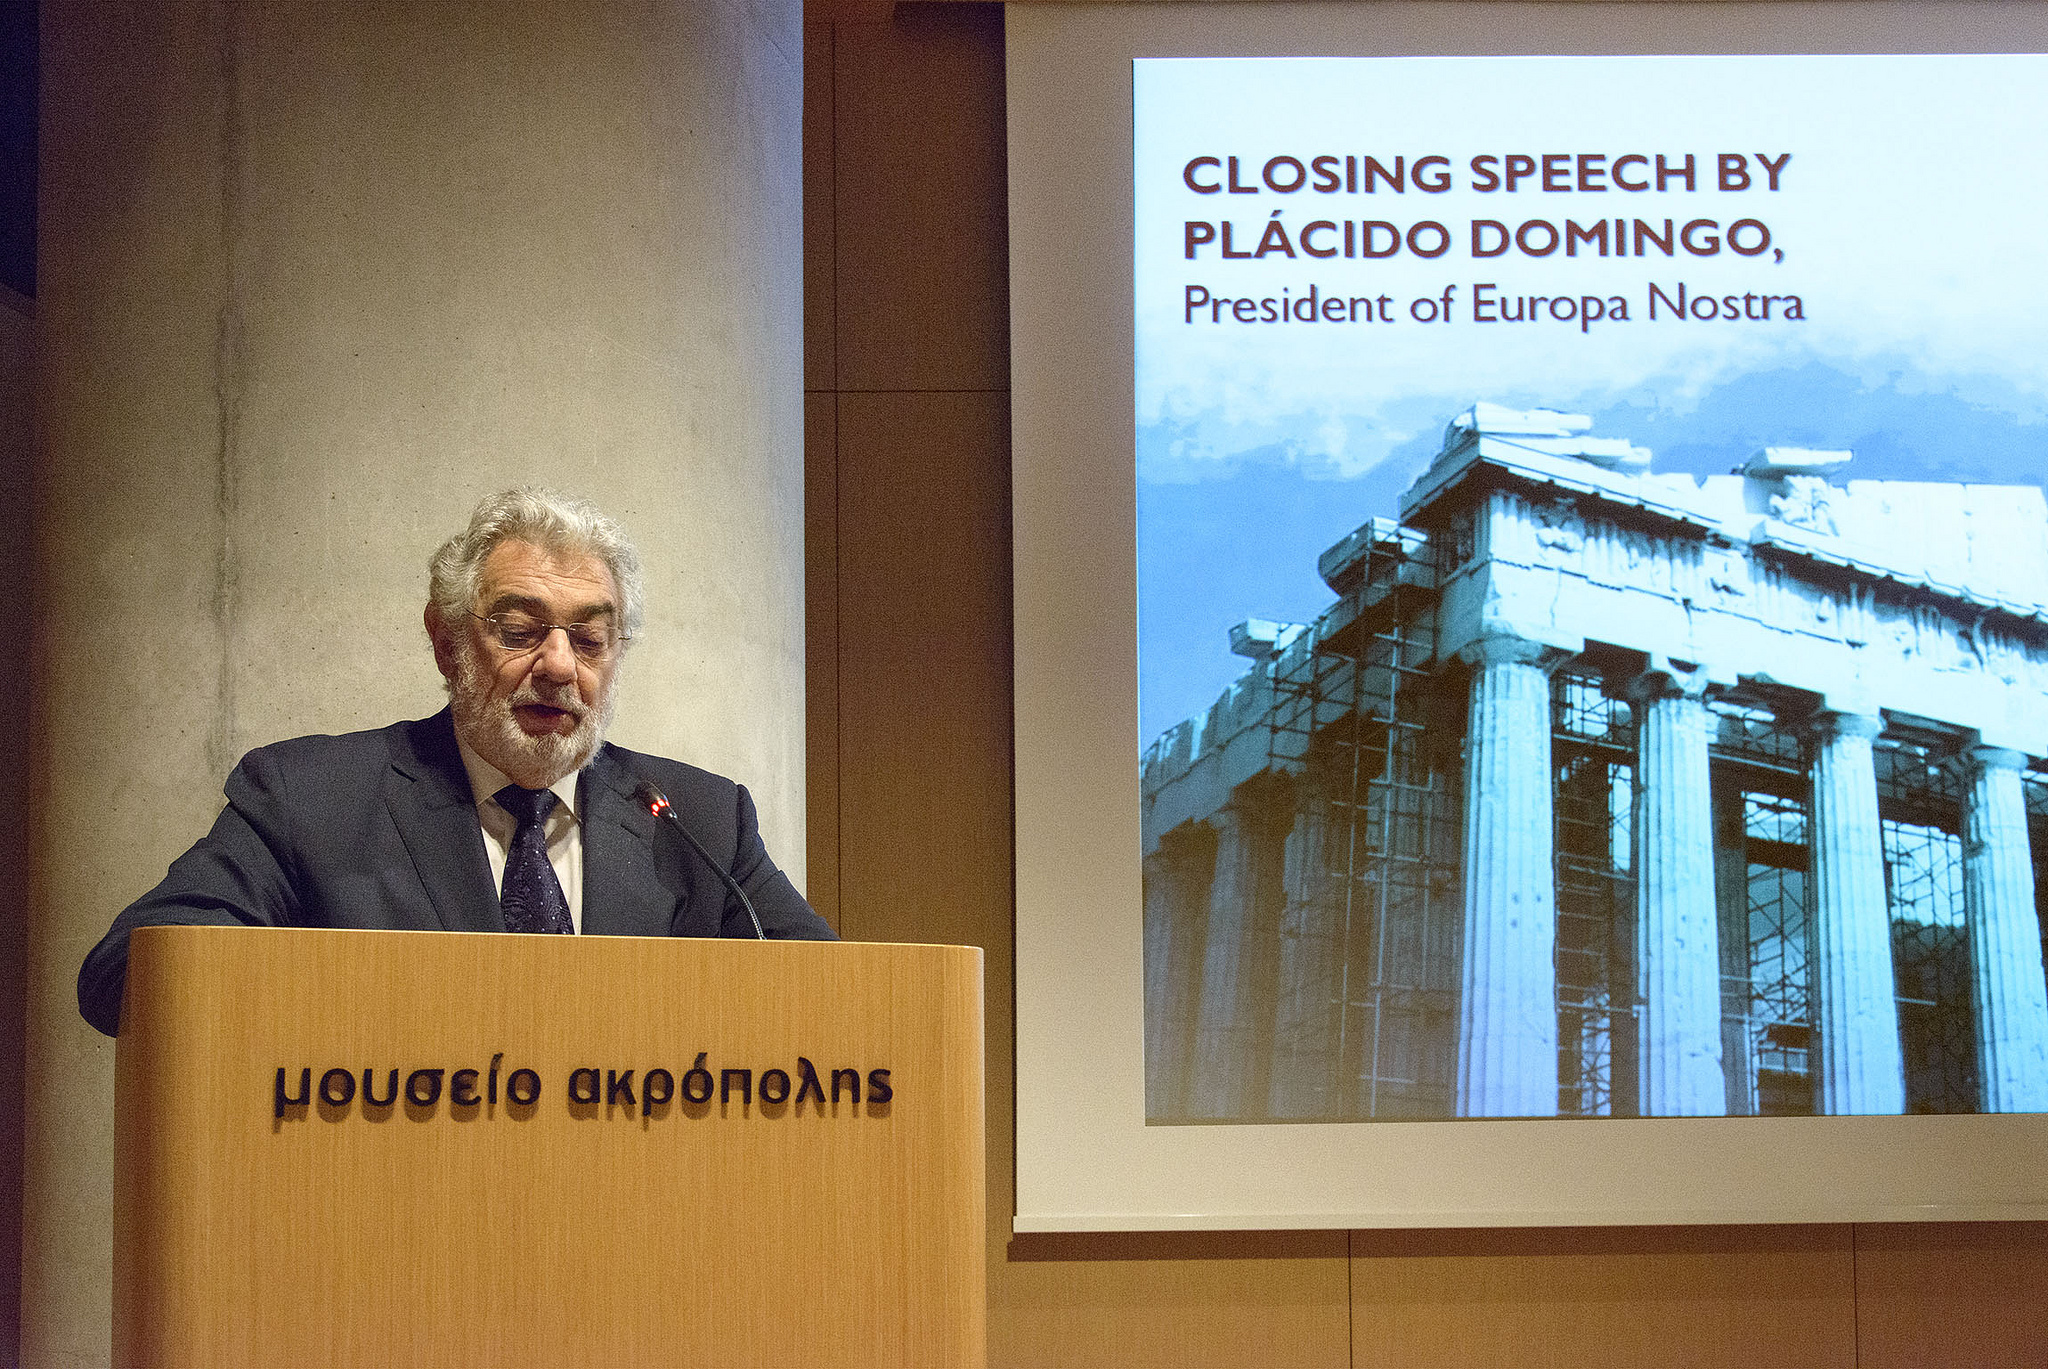 Plácido Domingo held a joint press conference at the Acropolis Museum in Athens Photo: Ilias Georgouleas